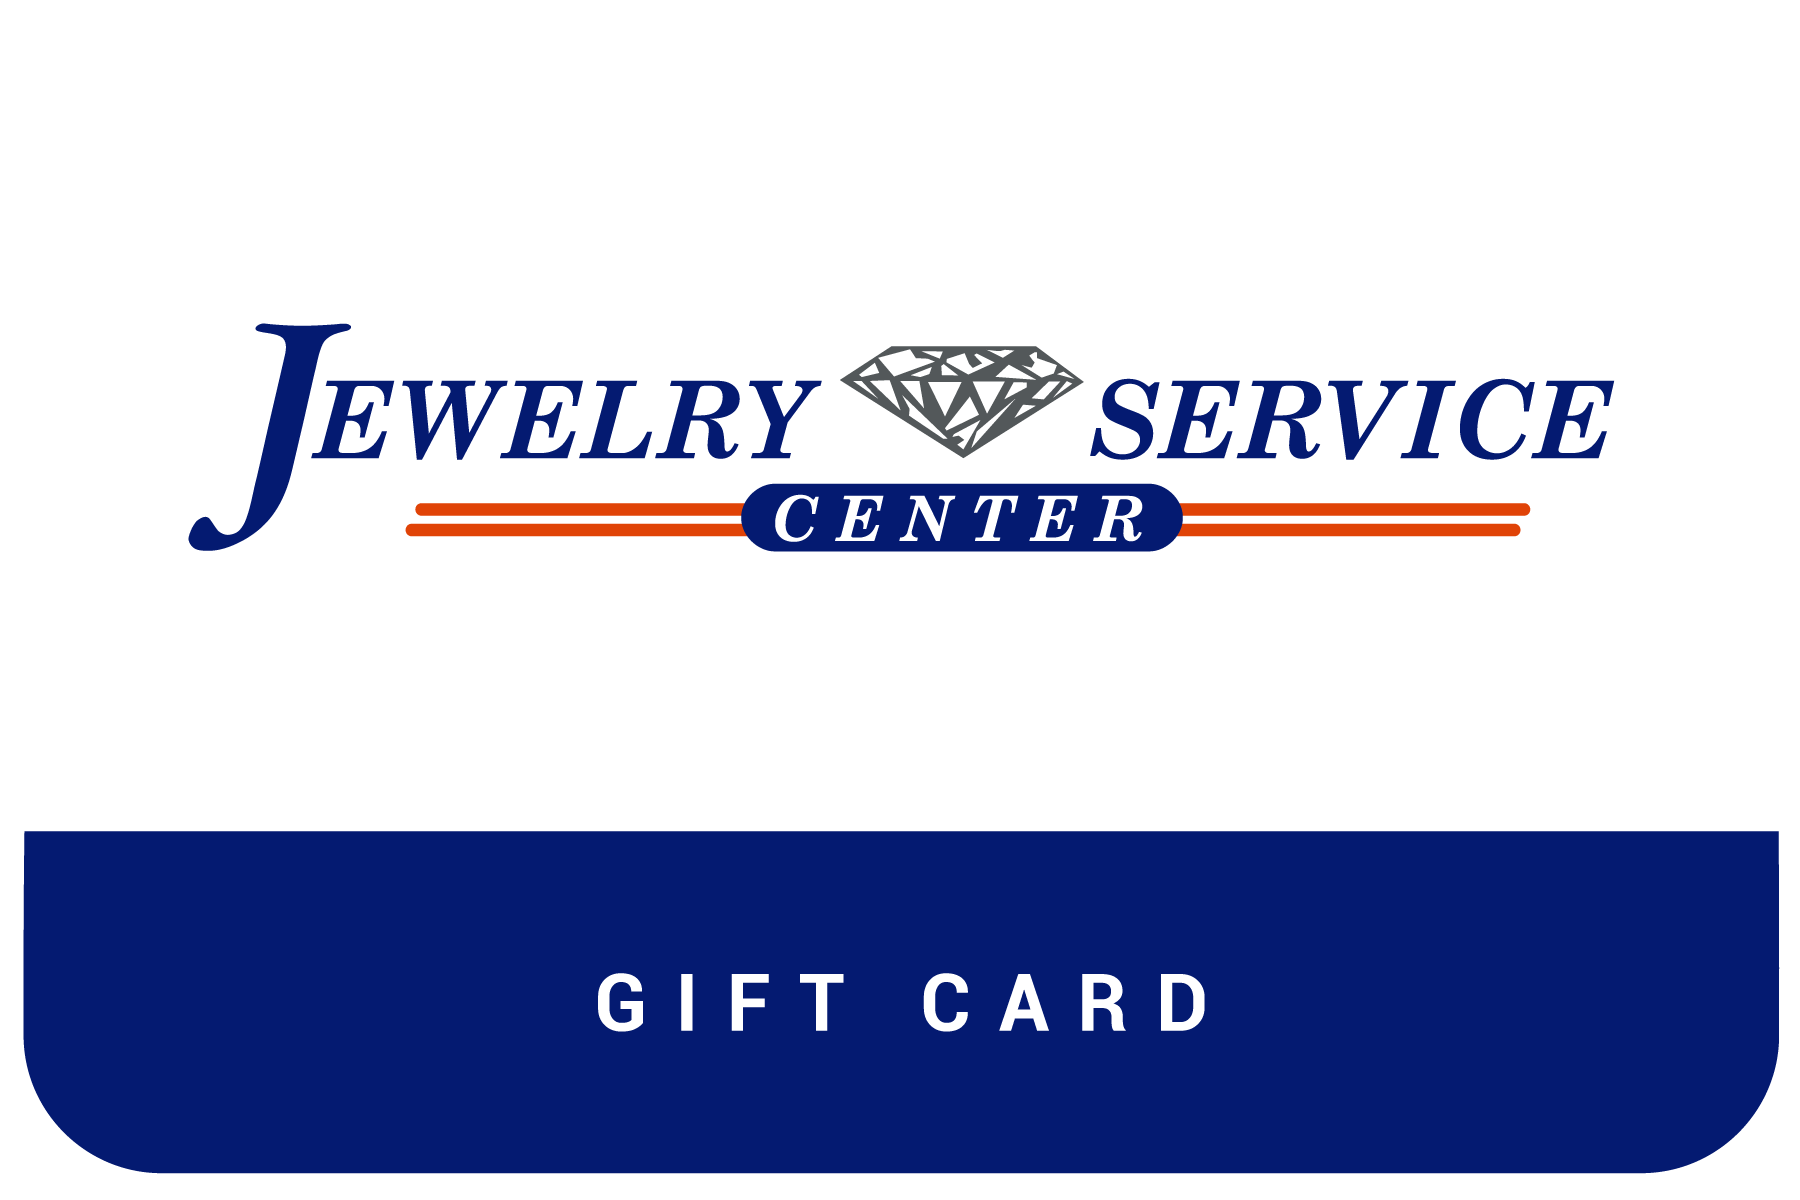 Jewelry Service Center $25 Gift Card